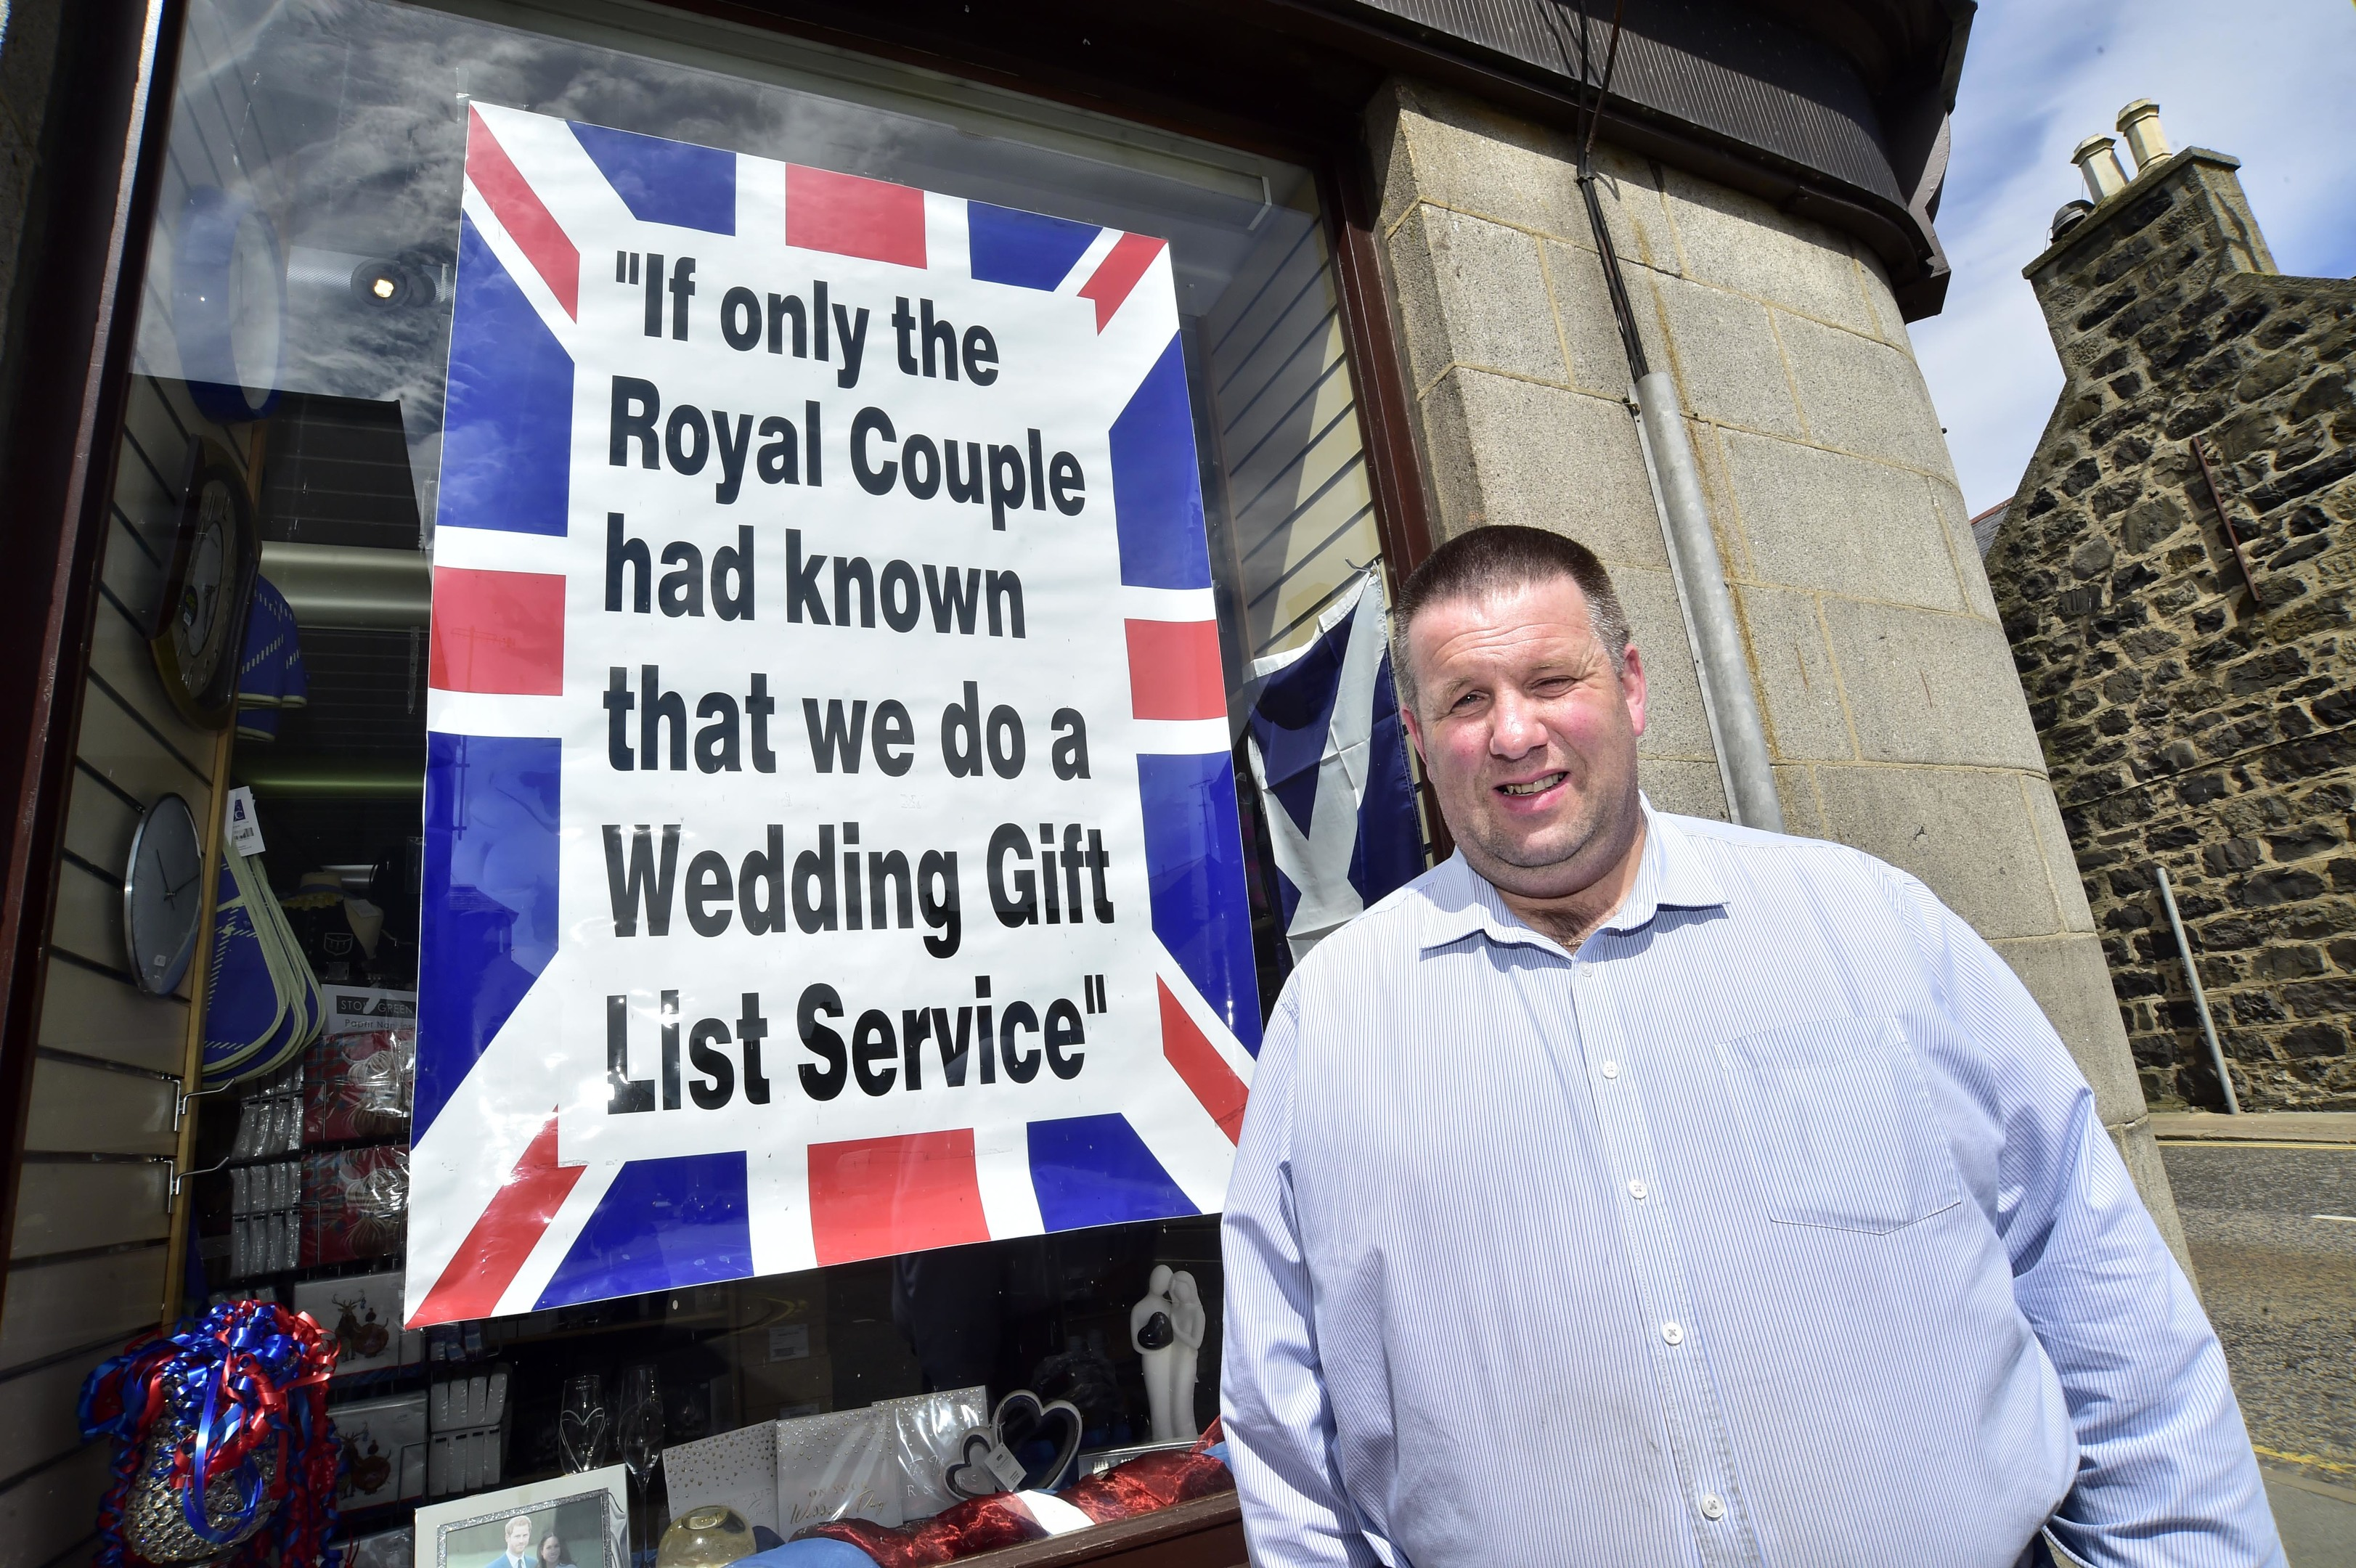 Brian Bruce from Homestyle is getting into the royal wedding spirit